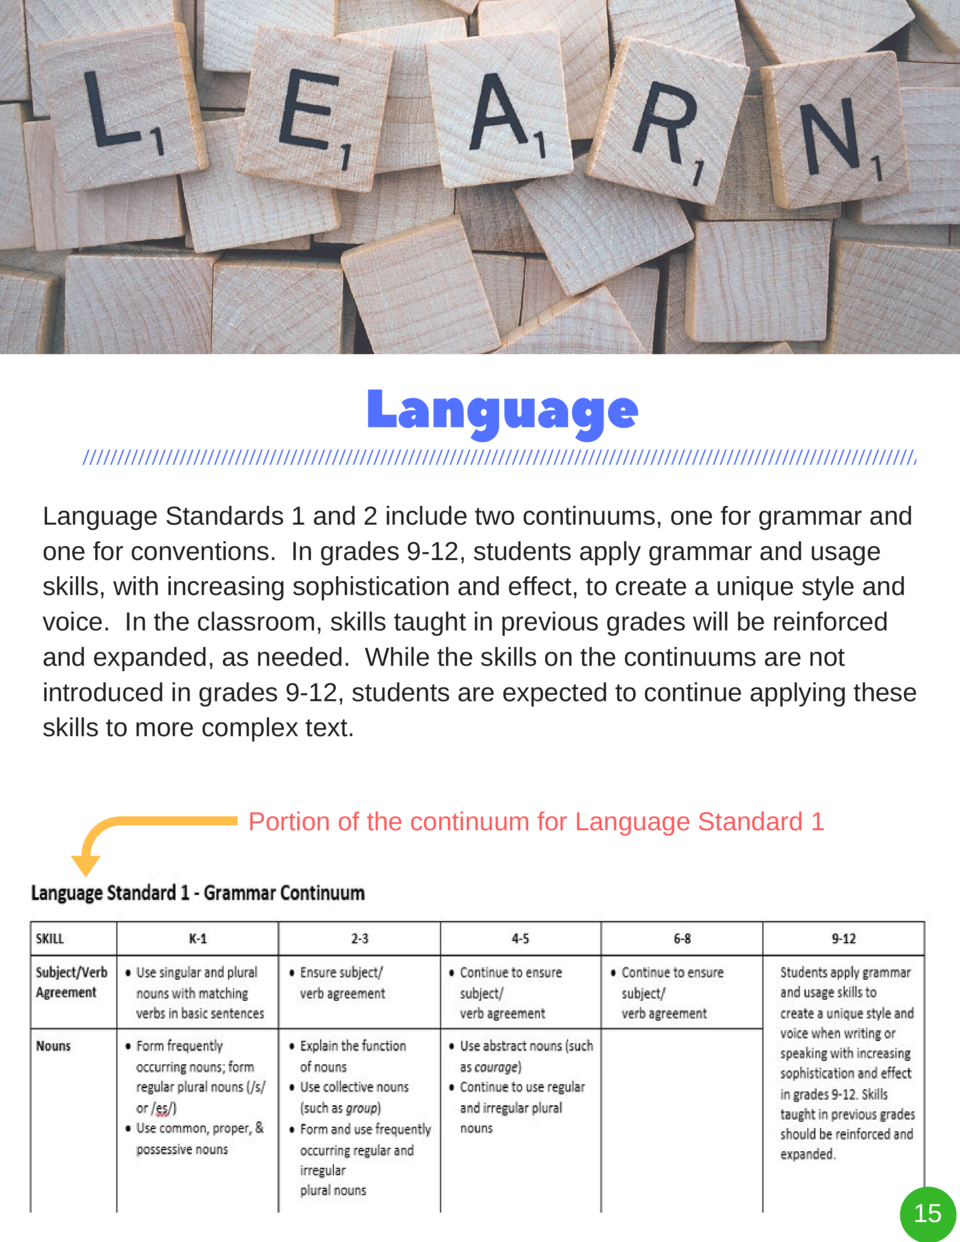 Language Language Standards 1 and 2 include two continuums, one for grammar and one for conventions. In grades 9-12, stude...